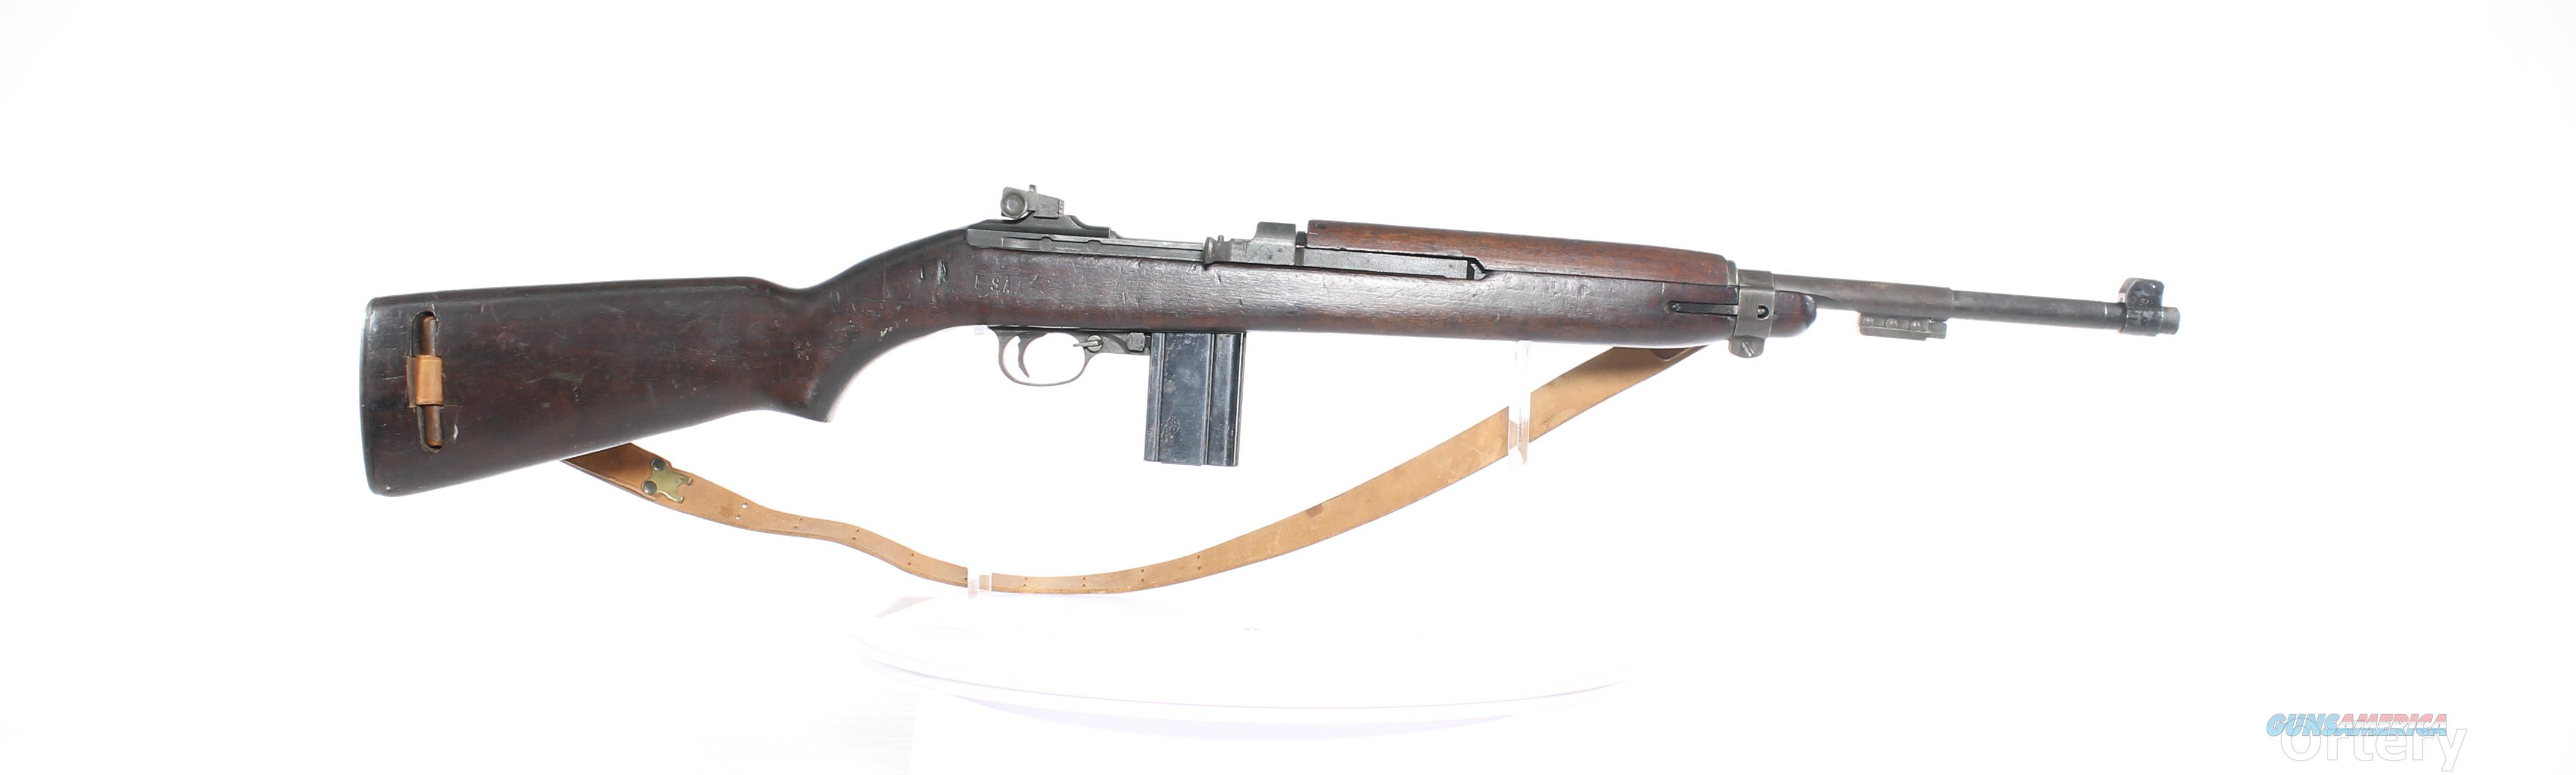 M1 rifle  definition of M1 rifle by The Free Dictionary